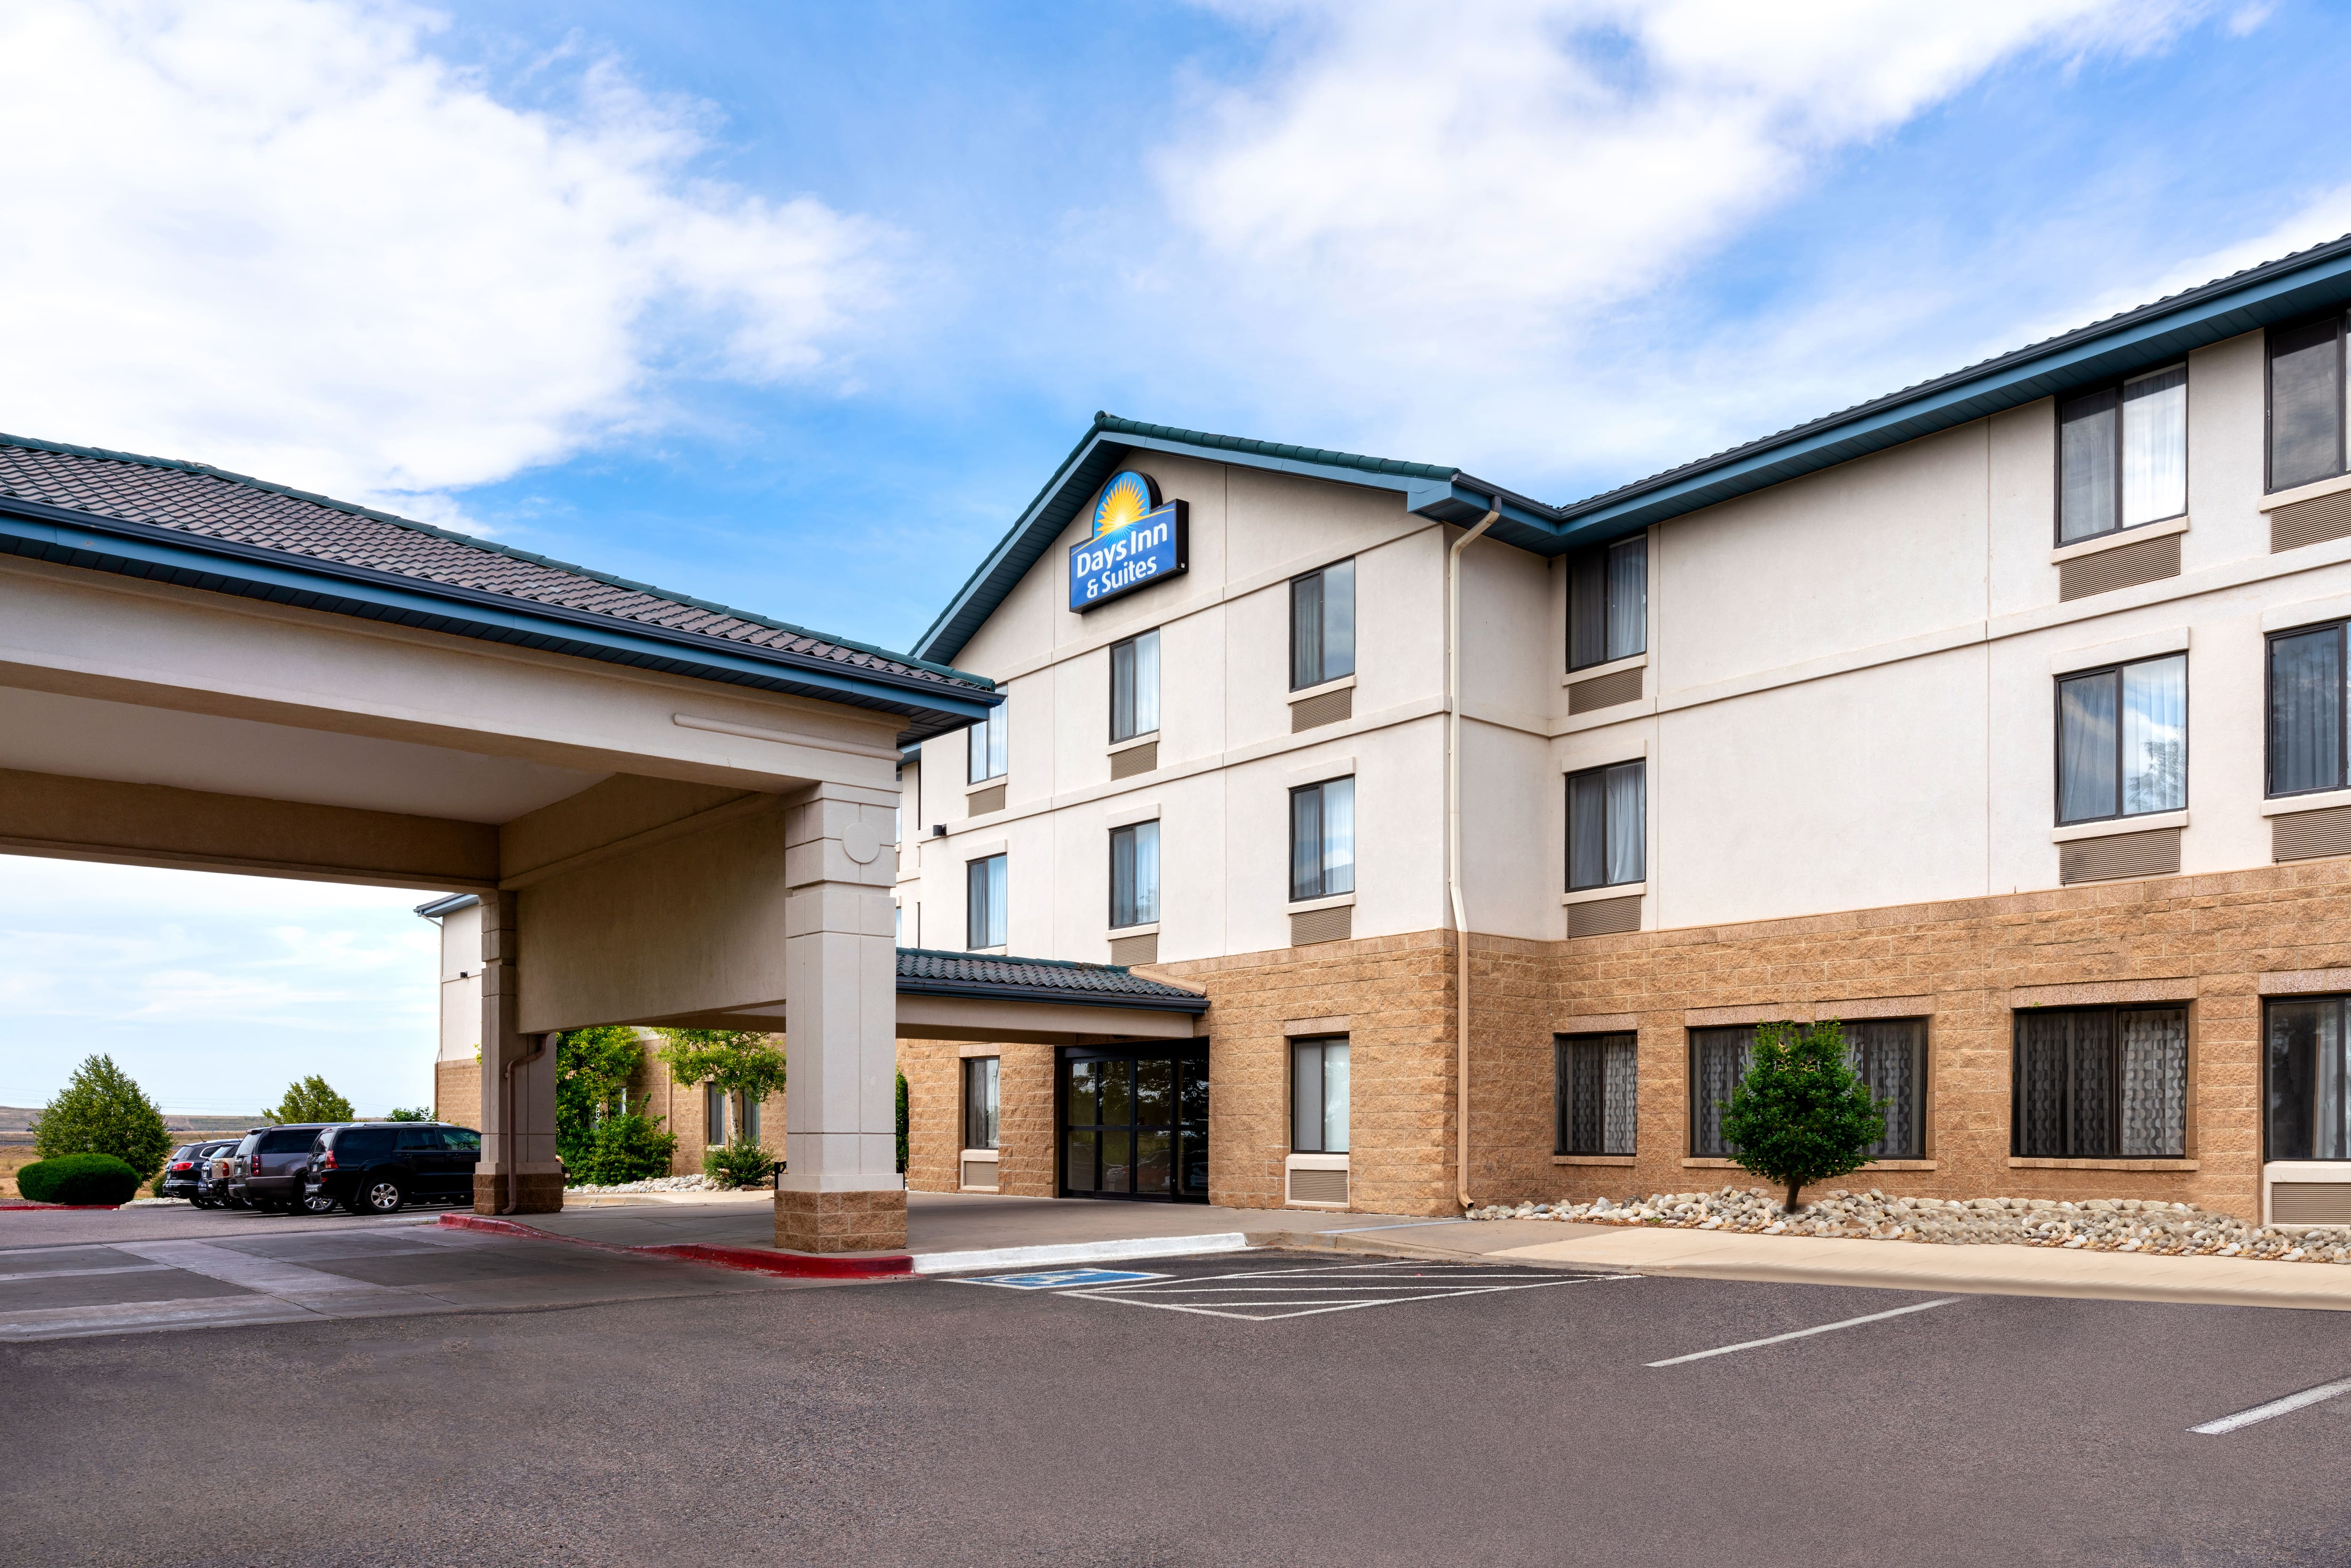 Exterior Of Days Inn U Suites Denver Airport Hotel In Colorado With Hotels Near Zoo